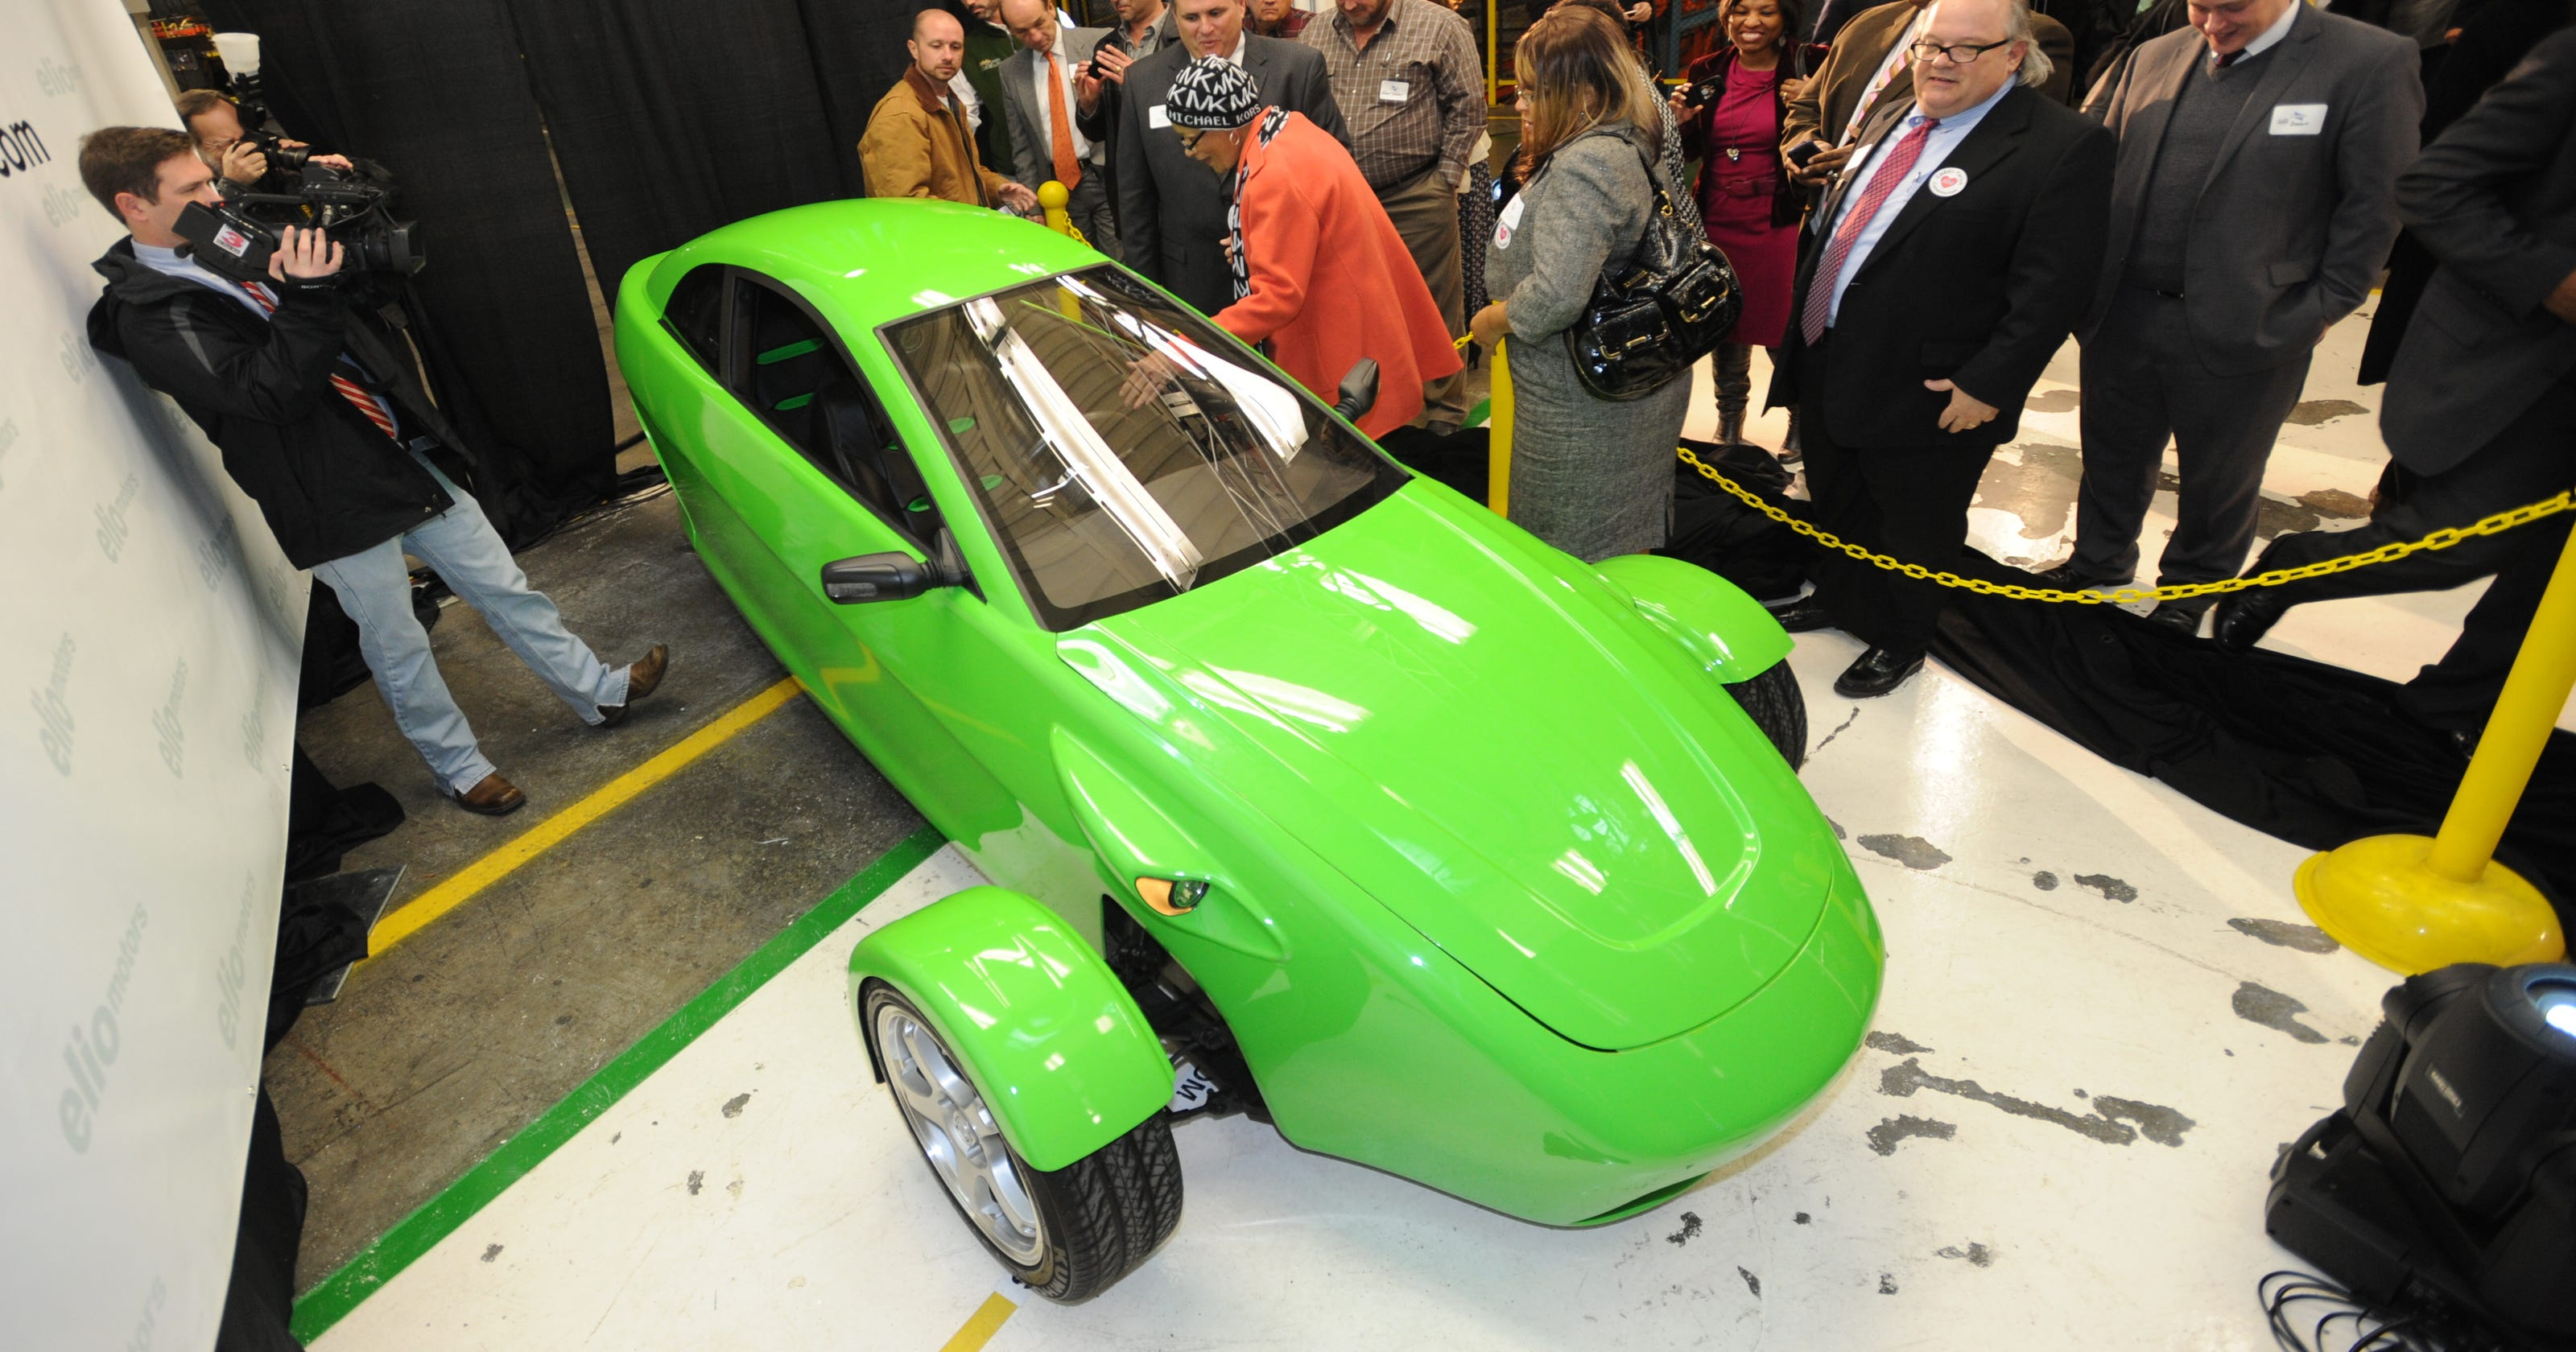 Elio motors 6 800 pretty cool Cool wheels t Cars